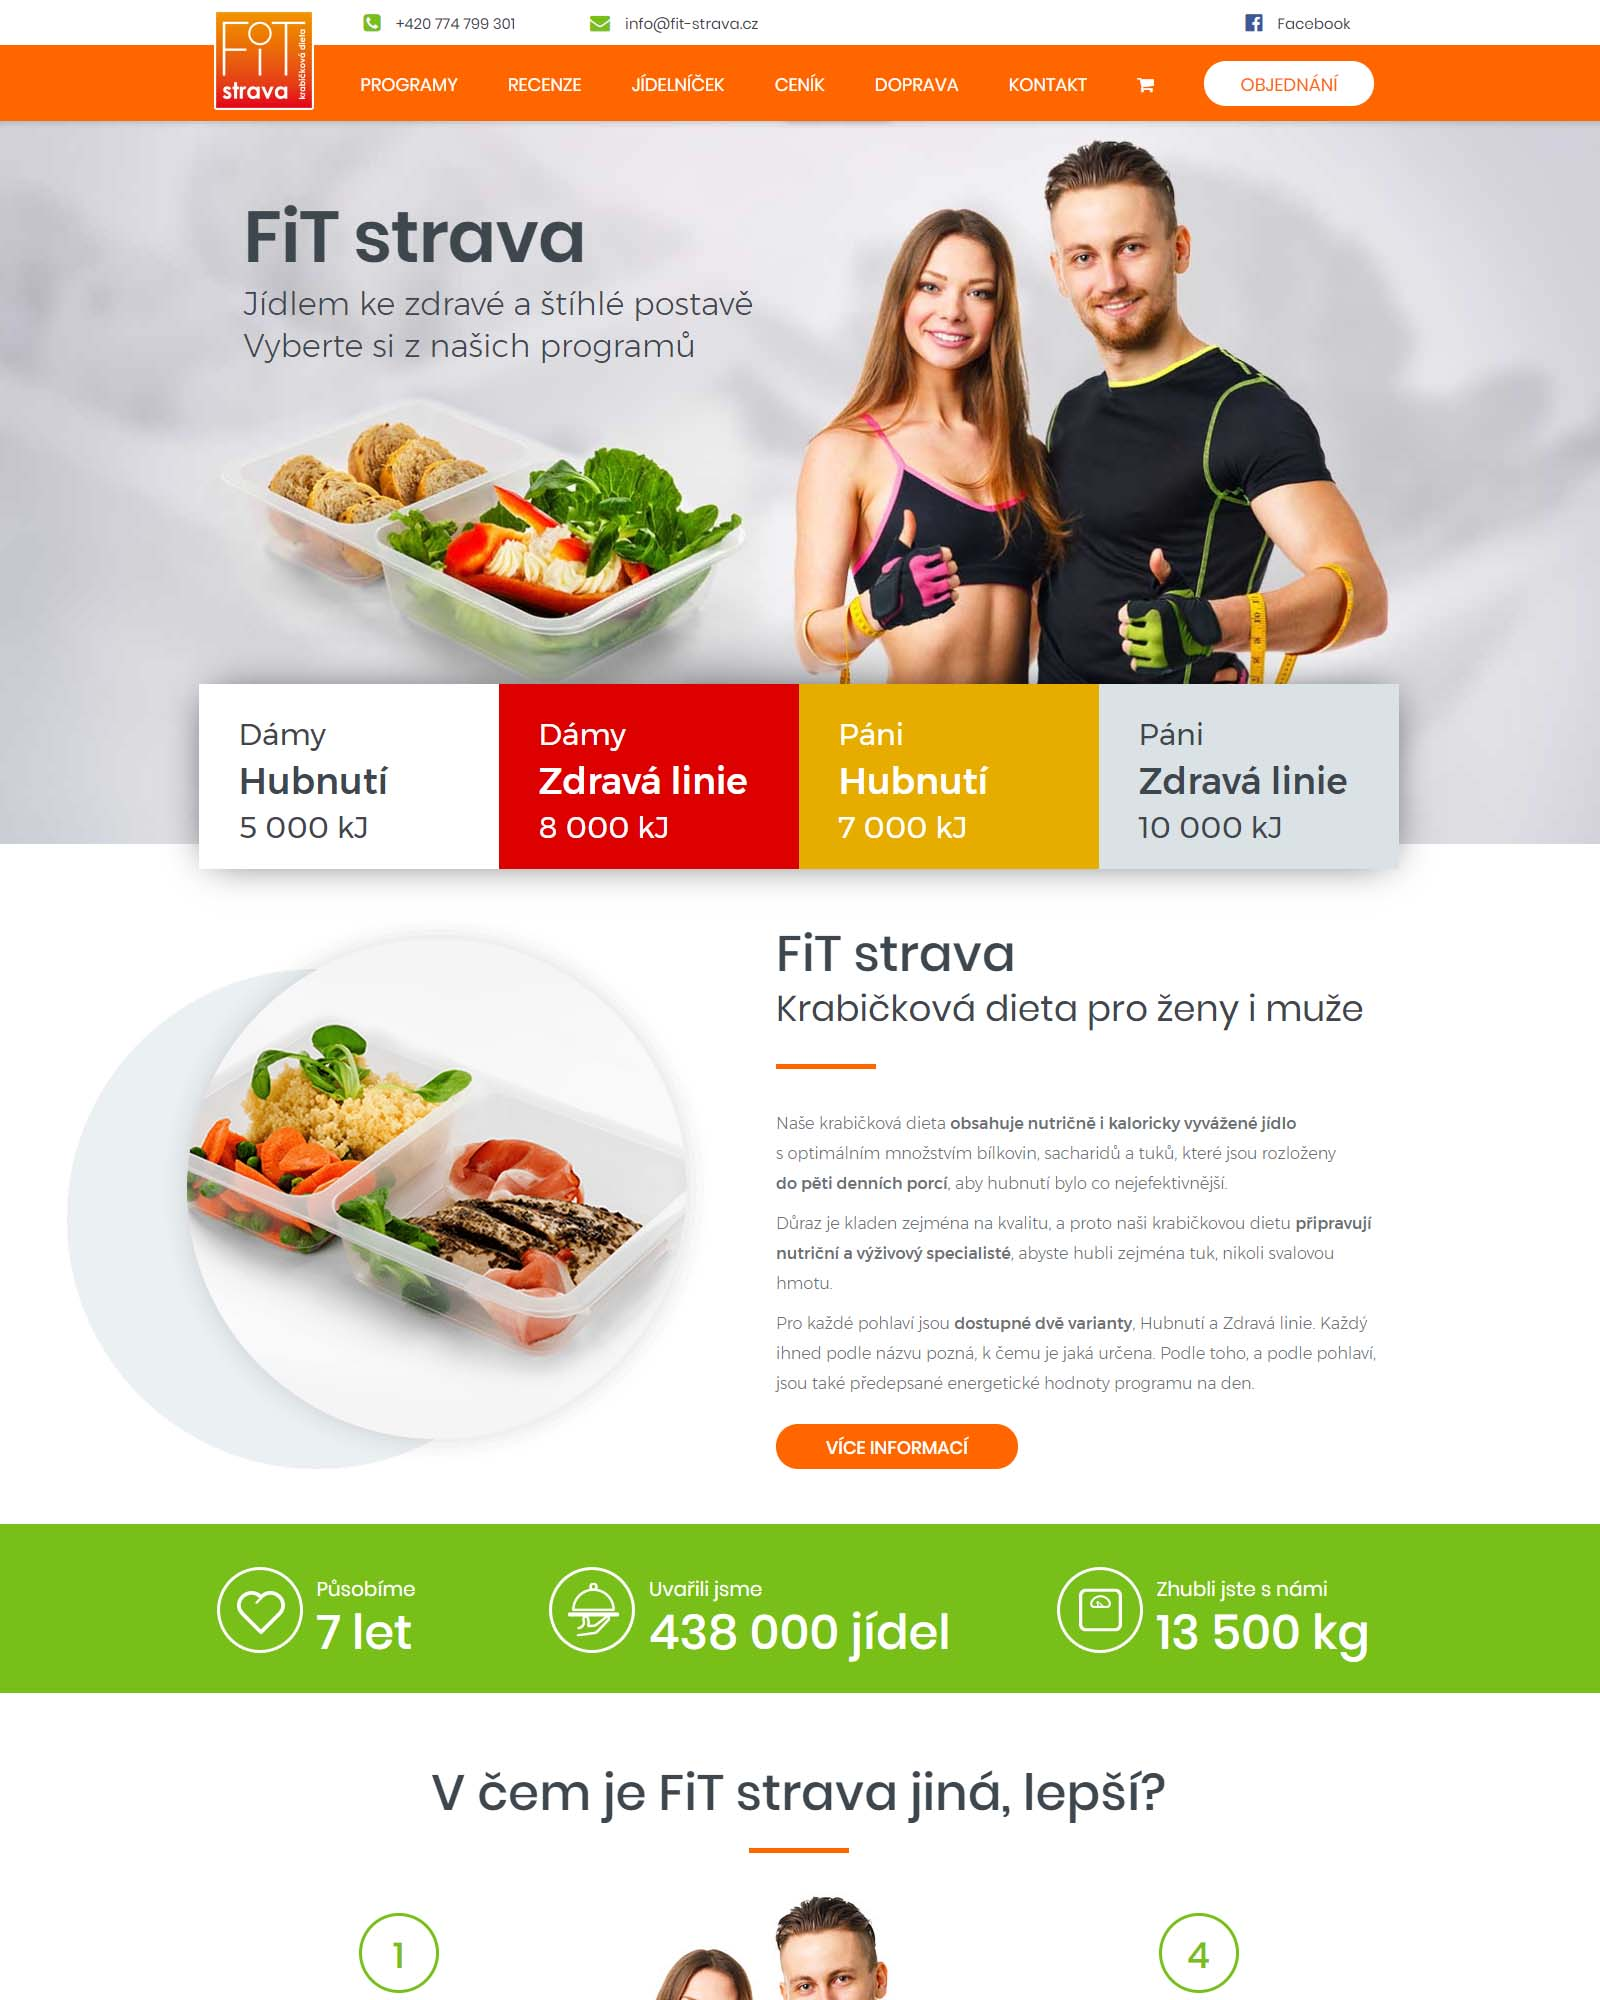 FiT strava